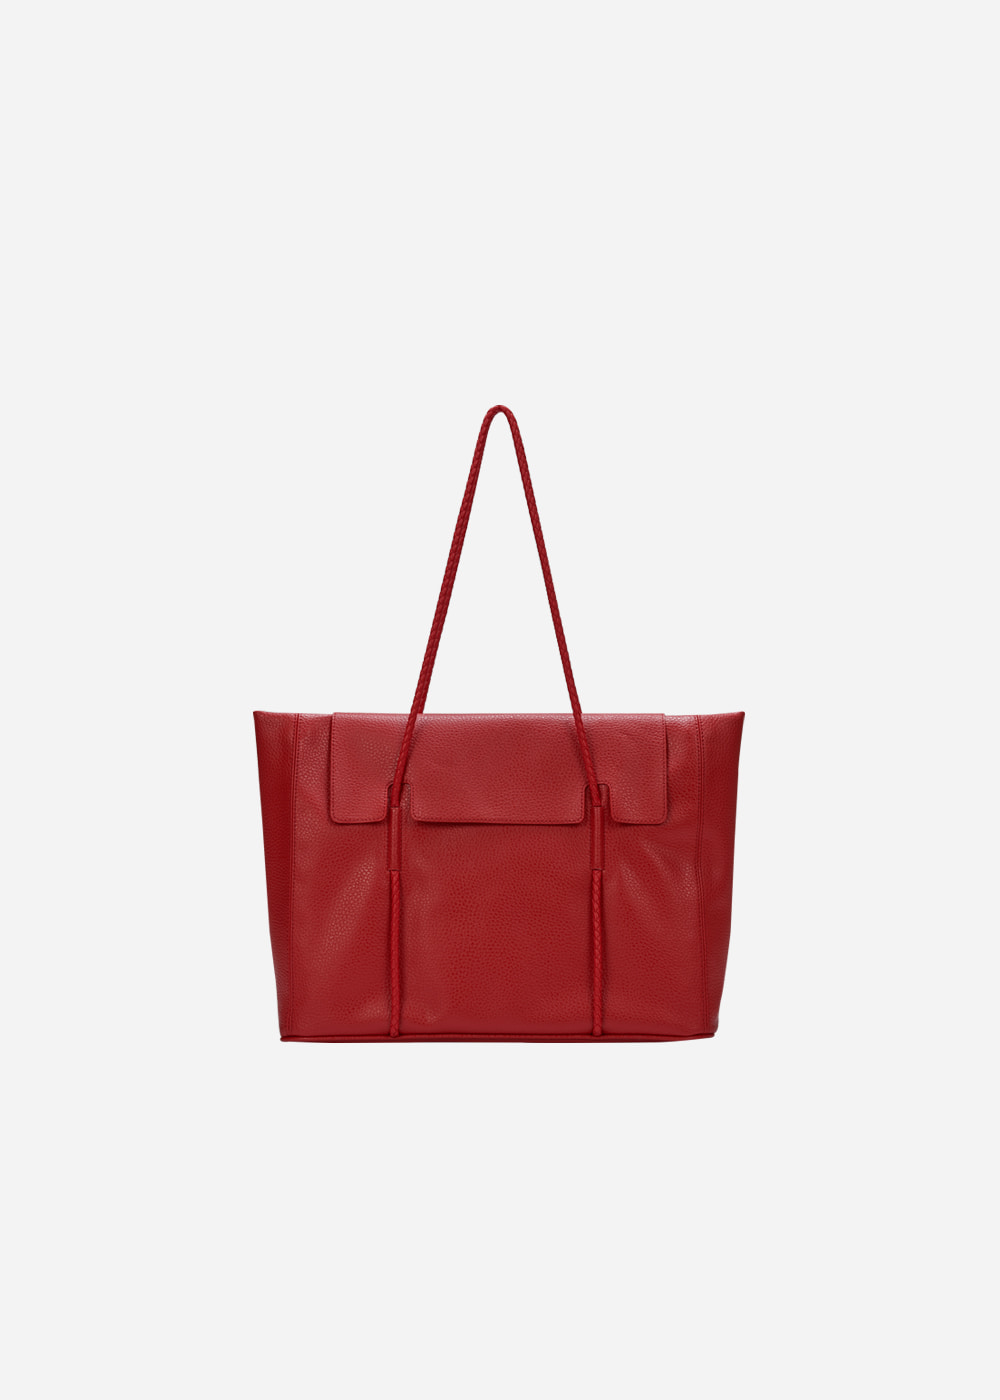 Norah Bag Red Medium